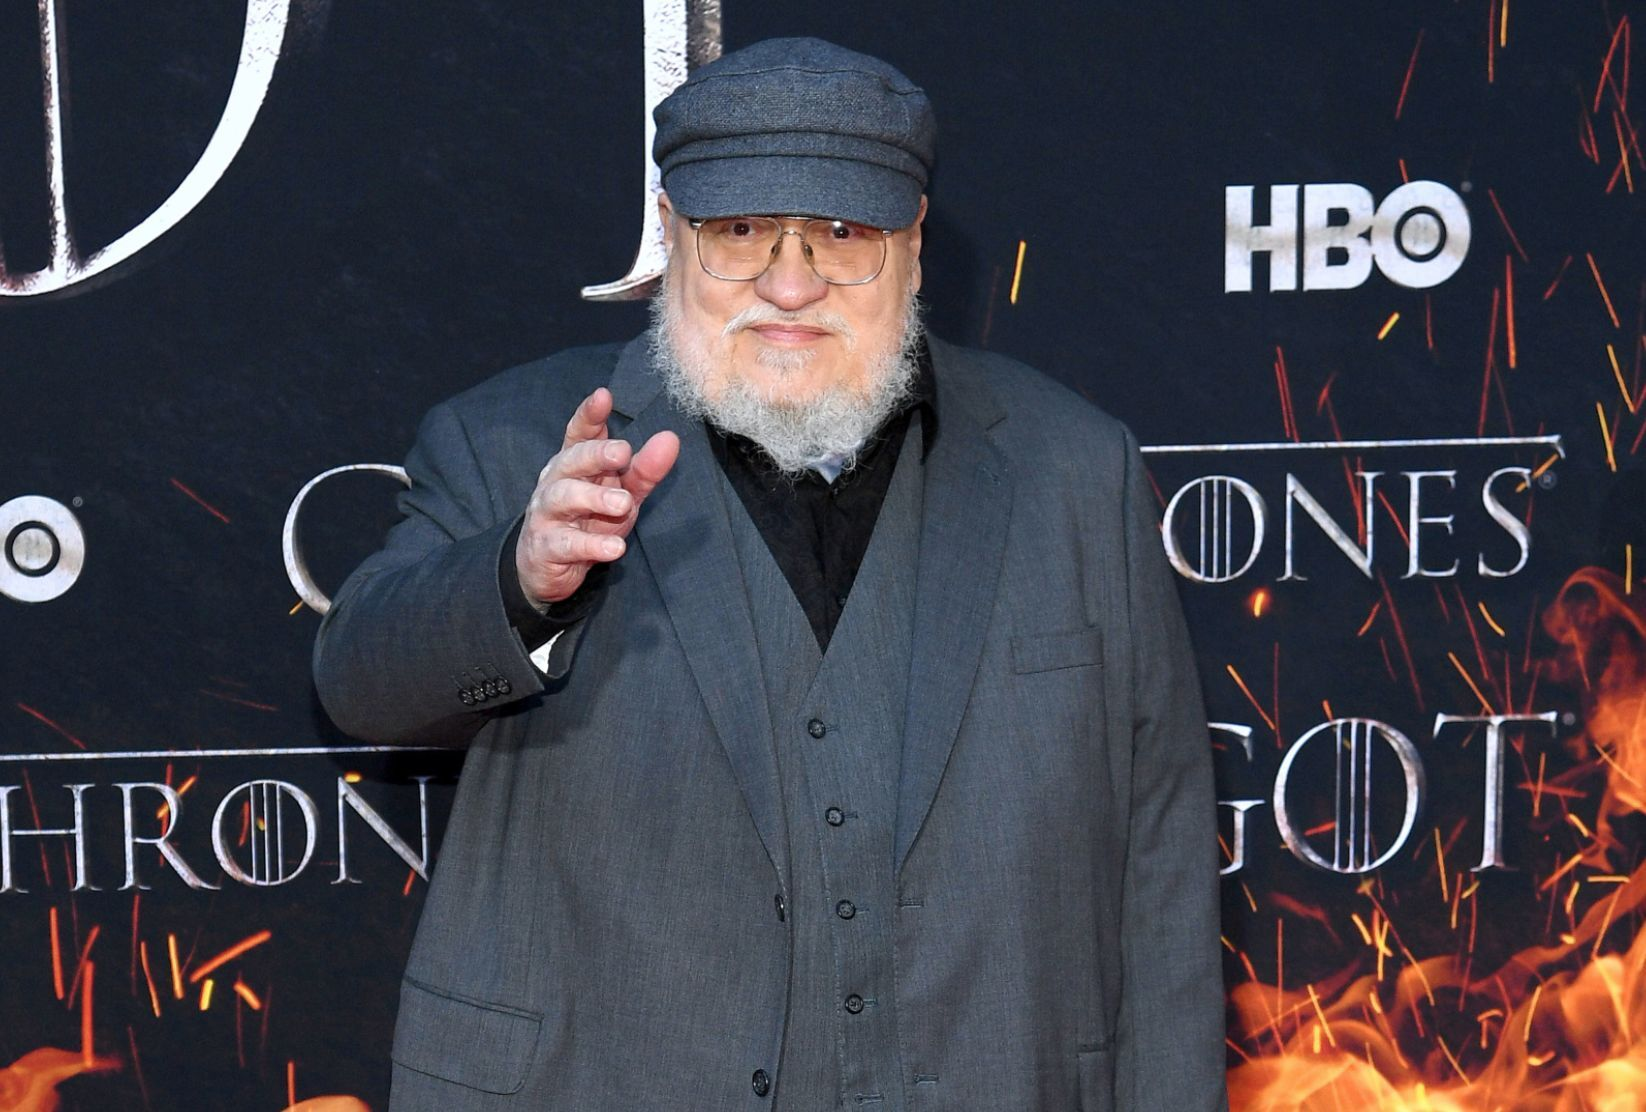 George R.R. Martin explains the laws of inheritance in Westeros